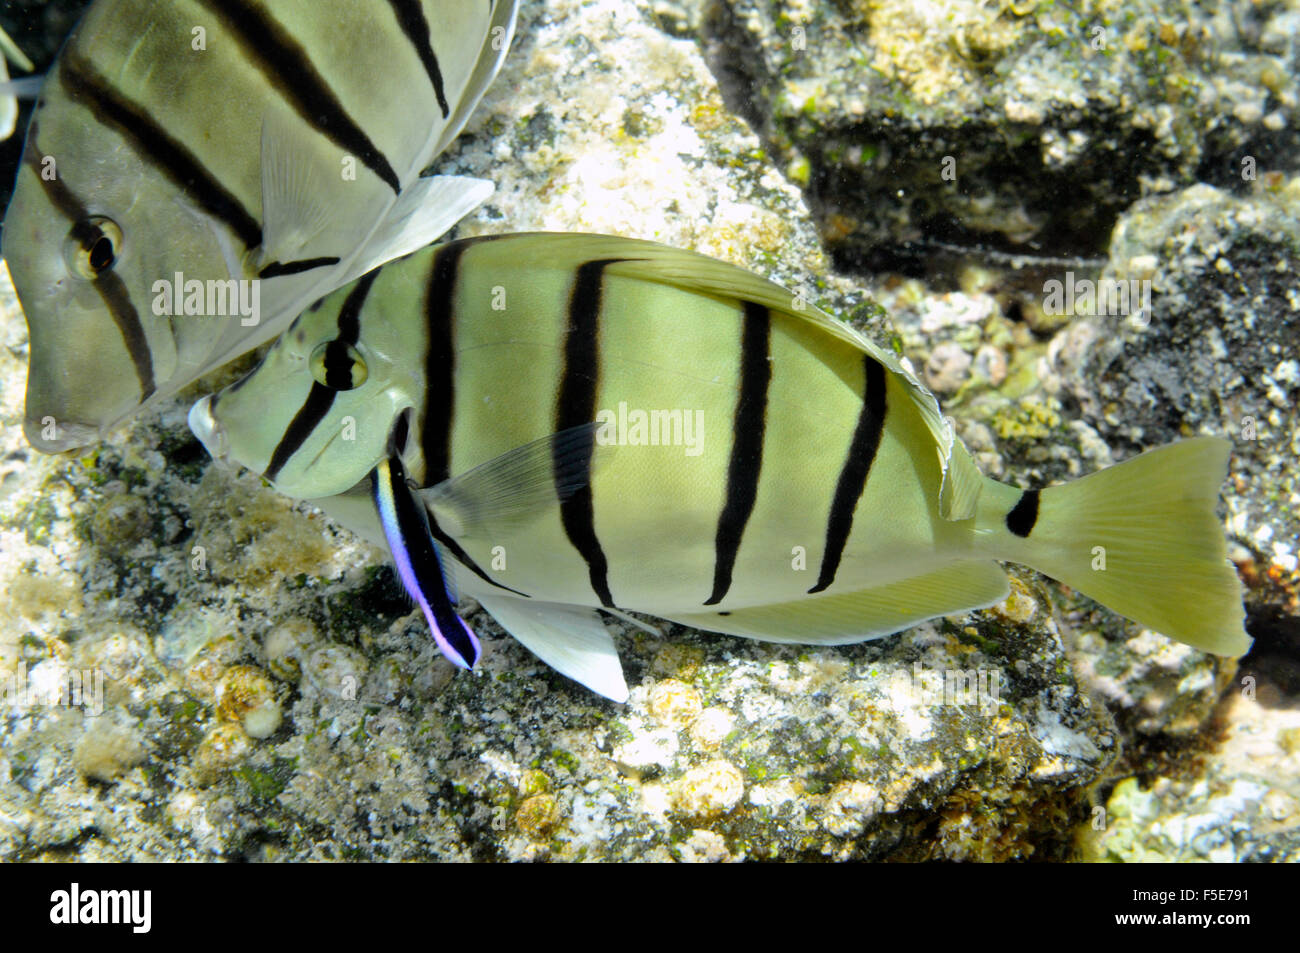 Convict tangs or manini, Acanthurus triostegus, get cleaned by Hawaiian cleaner wrasse, Labroides phthirophagus, Kapoho, Hawaii Stock Photo